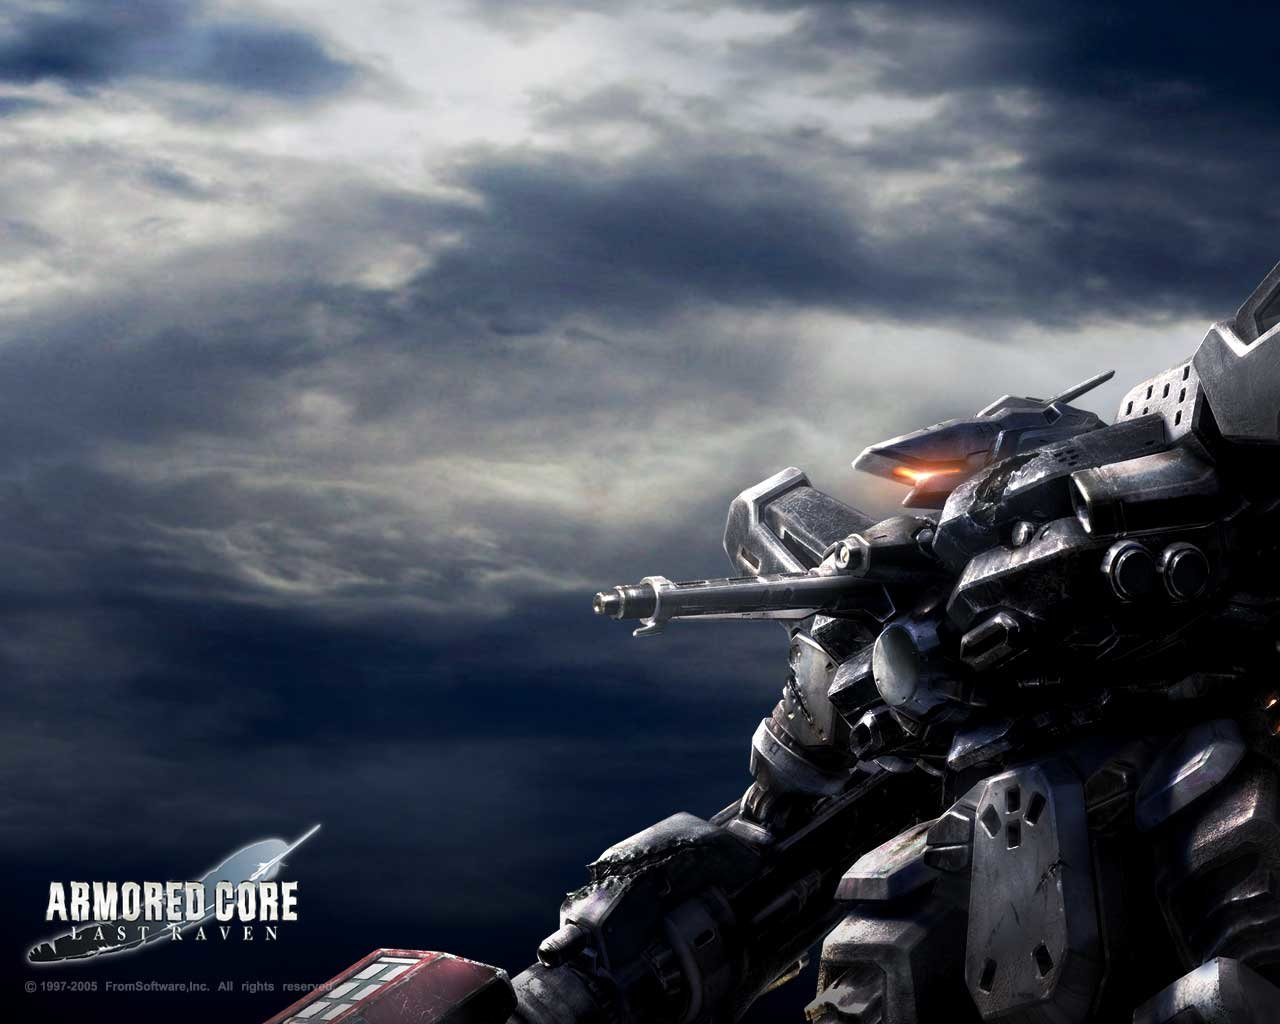 Armored Core Wallpapers Hd For Desktop Backgrounds